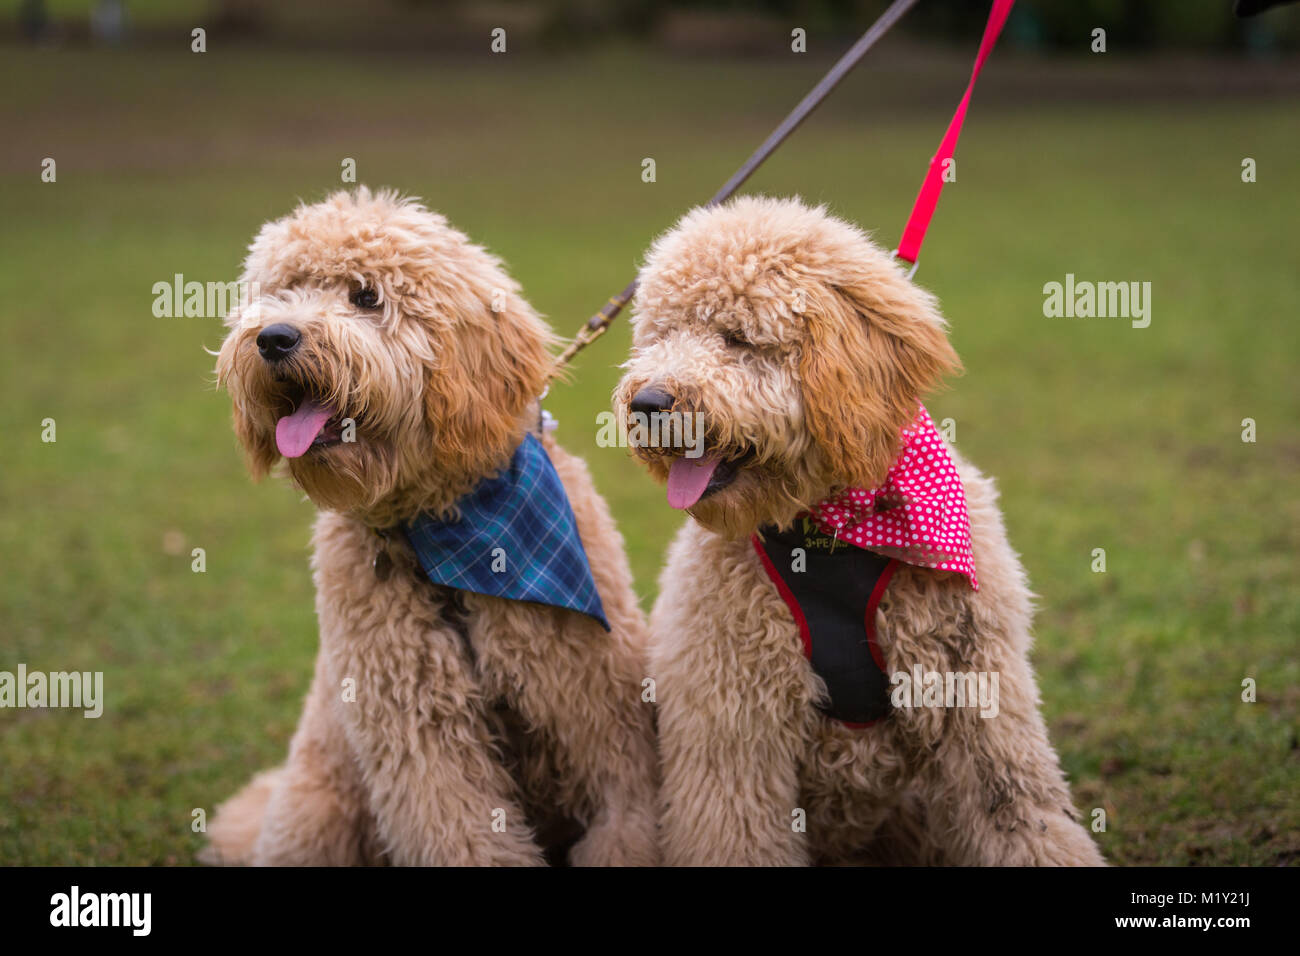 Two goldendoodles goldendoodle dogs, wearing bandanas, in a public park UK - Stock Image